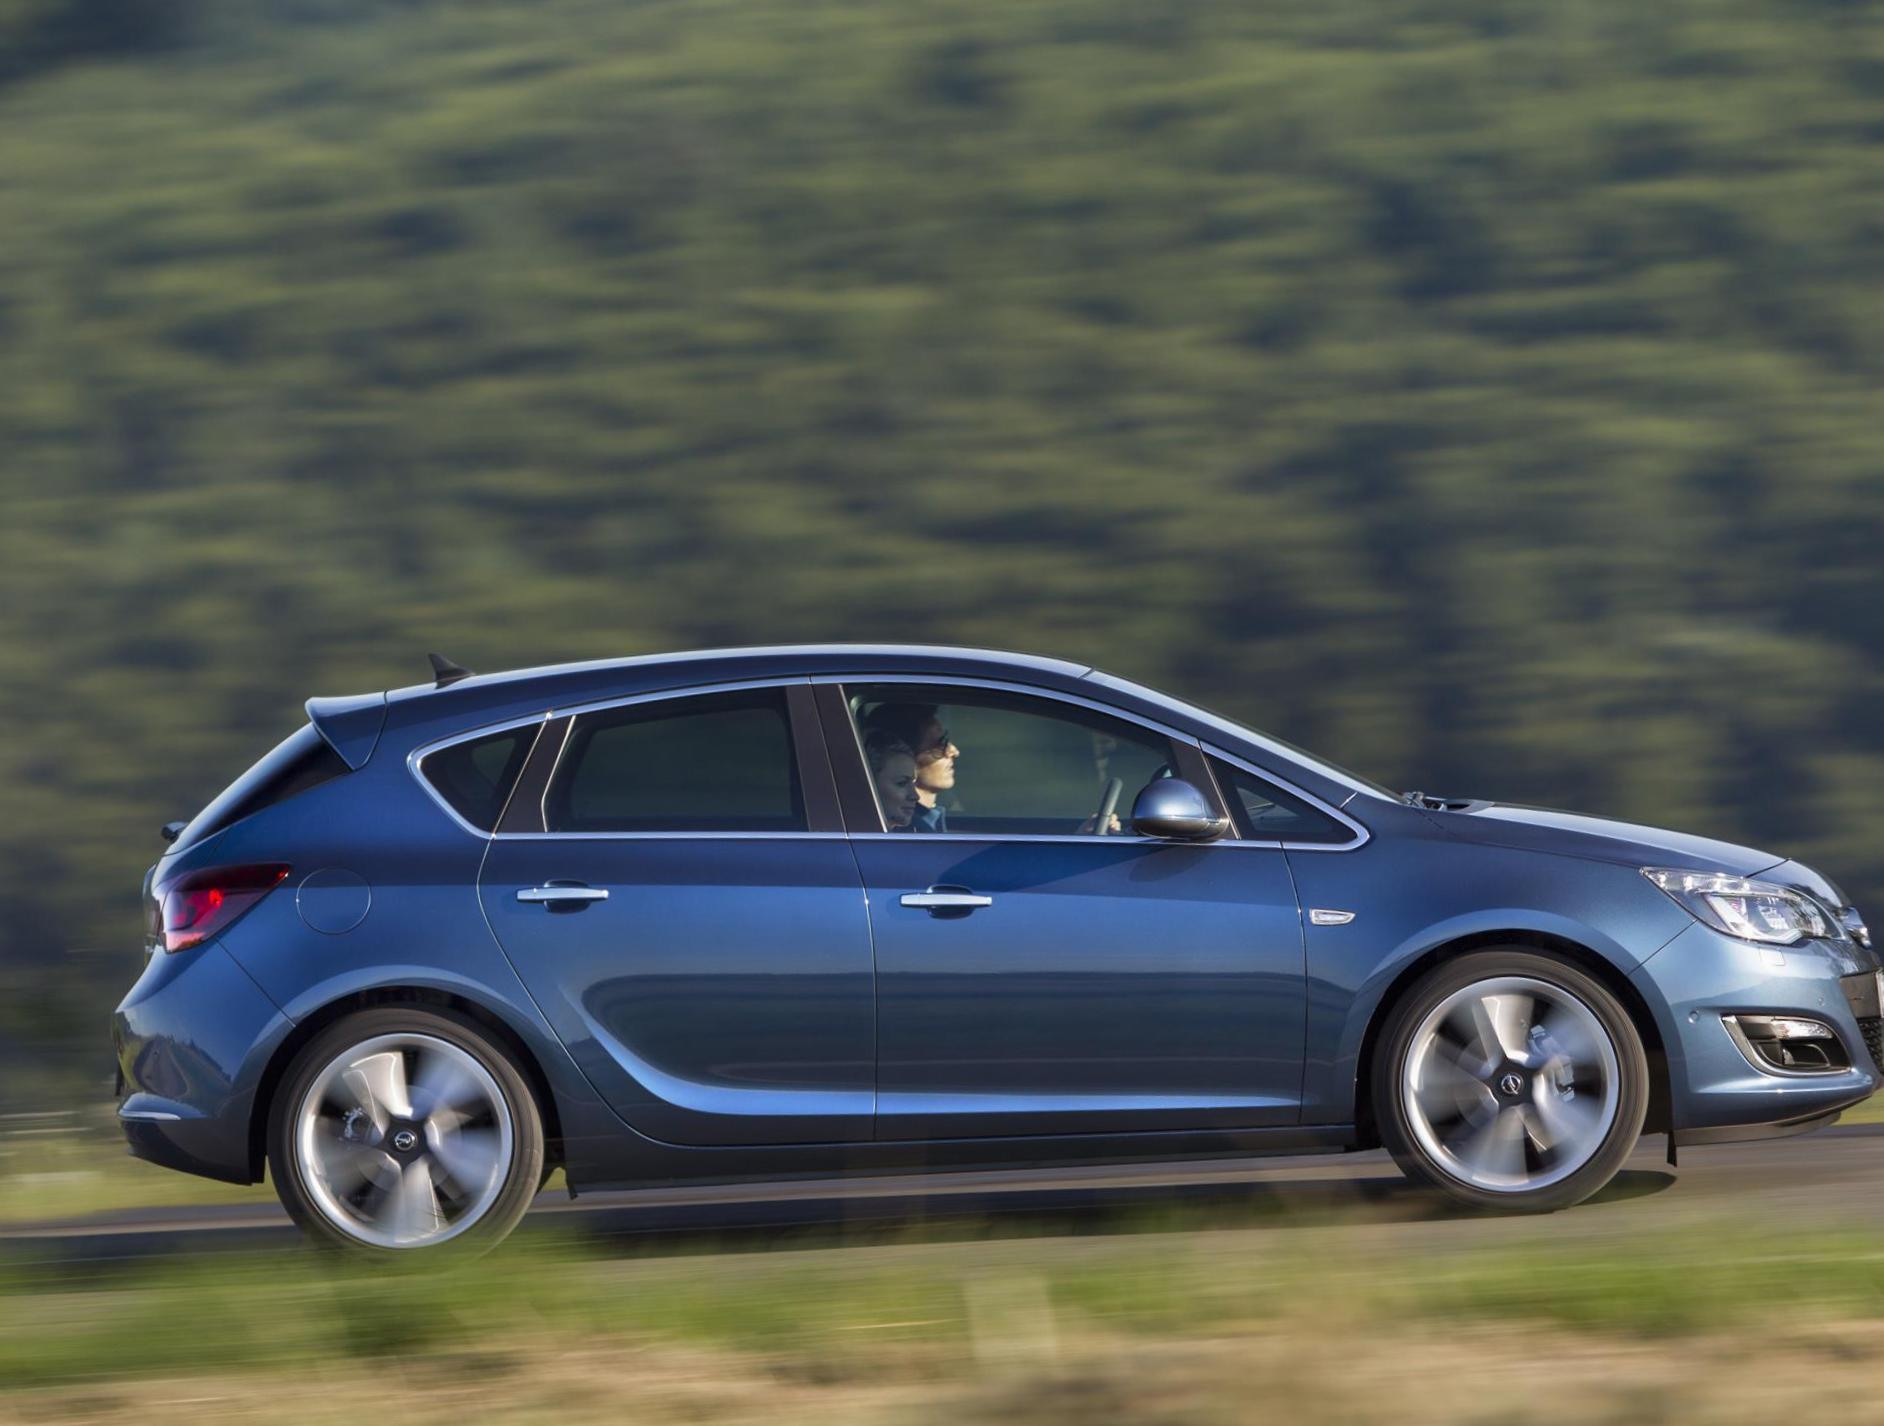 Opel Astra J Hatchback Photos And Specs Photo Opel Astra J Hatchback Parts And 24 Perfect Photos Of Opel Astra J Hatchback